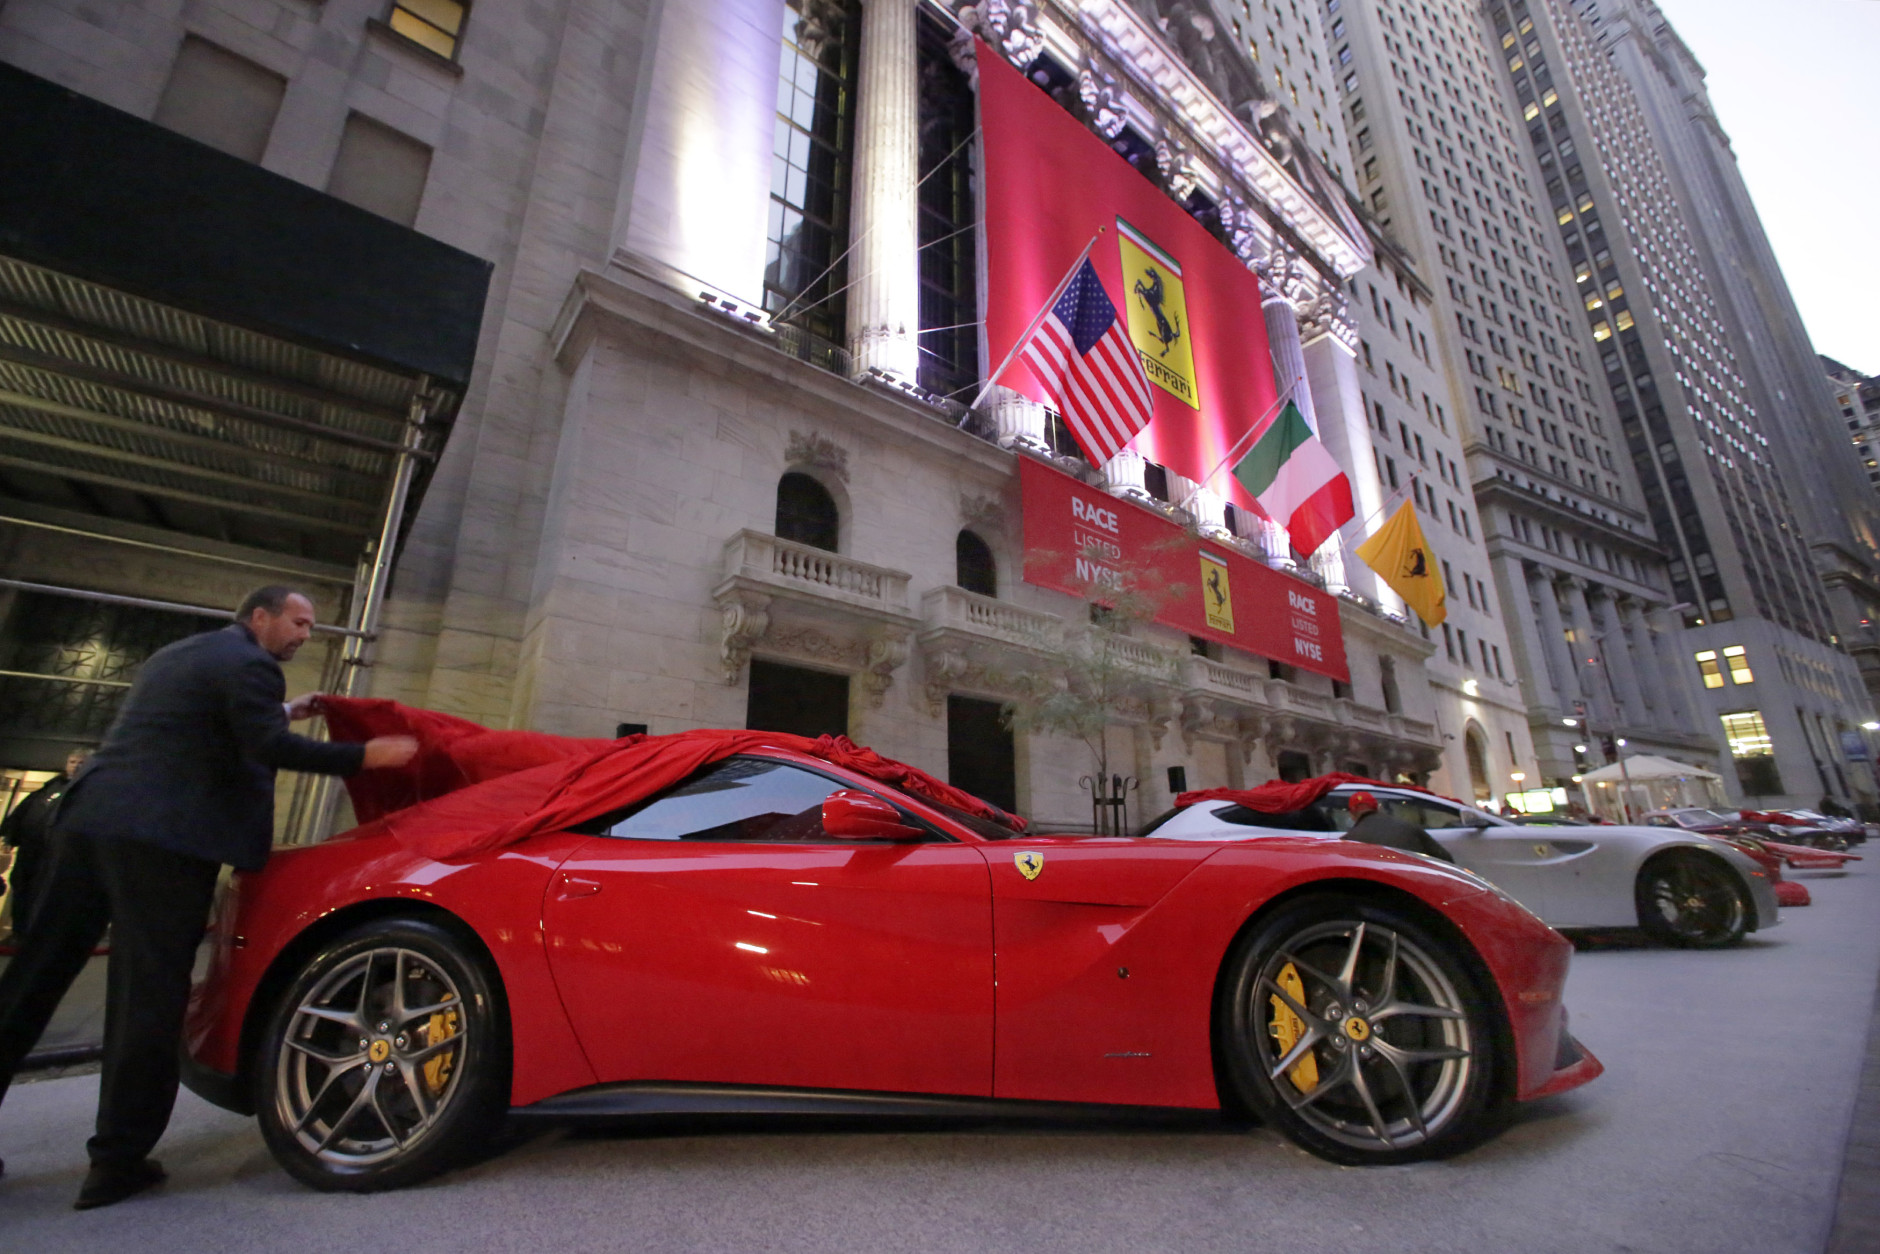 Wall street ferrari nv nyserace goes public the gazette review ferrari nv nyserace raced onto the new york stock exchange earlier today and its shares that go by the stock ticker race spiked 15 percent in their biocorpaavc